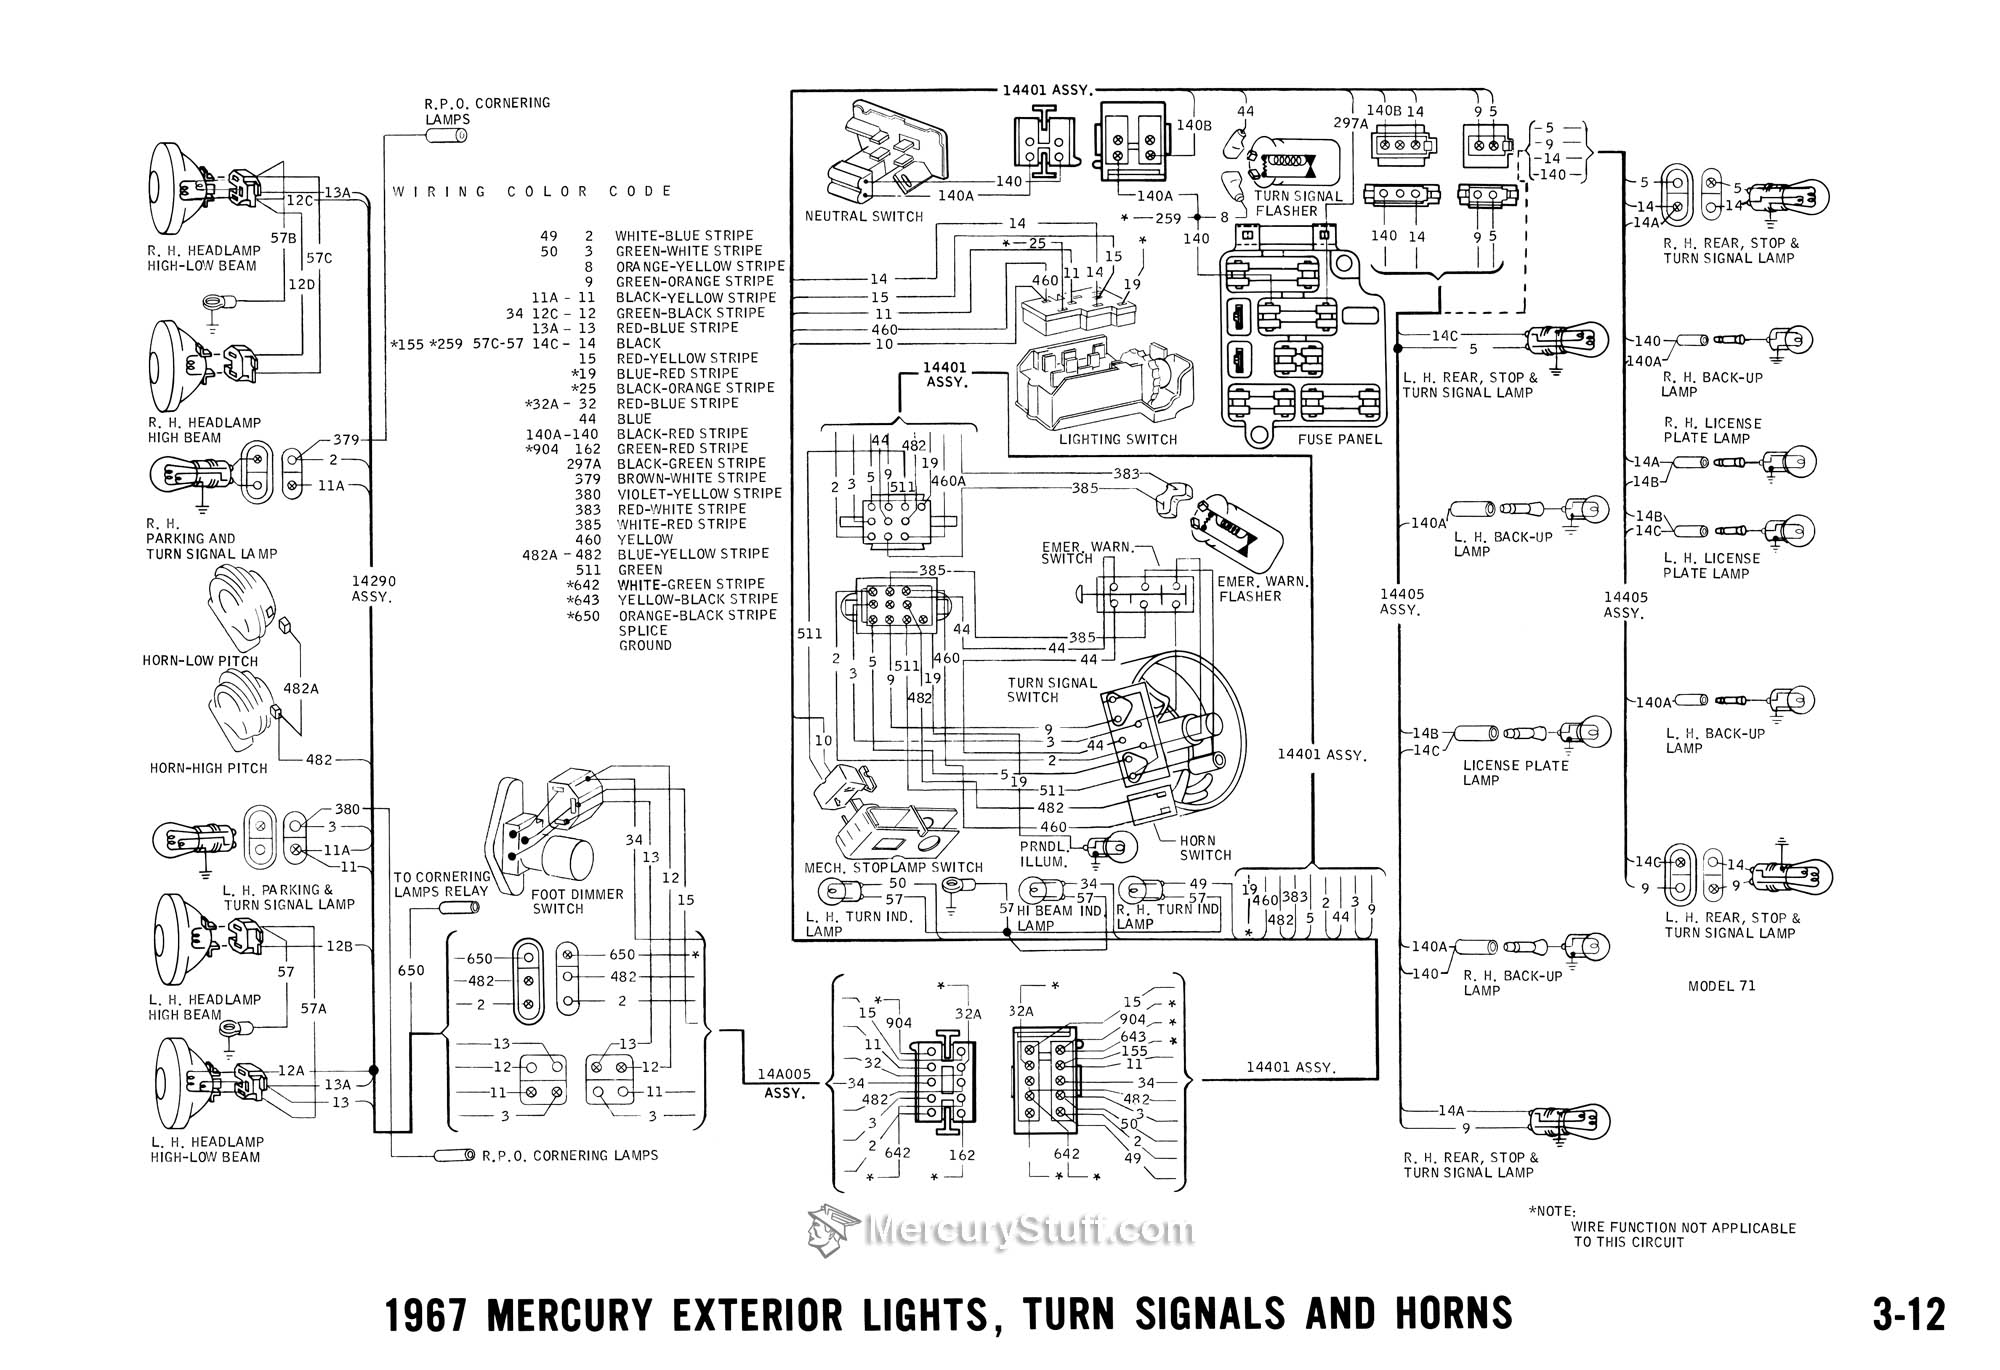 1999 cougar fuse diagram schema wiring diagrams rh 26 pur tribute de